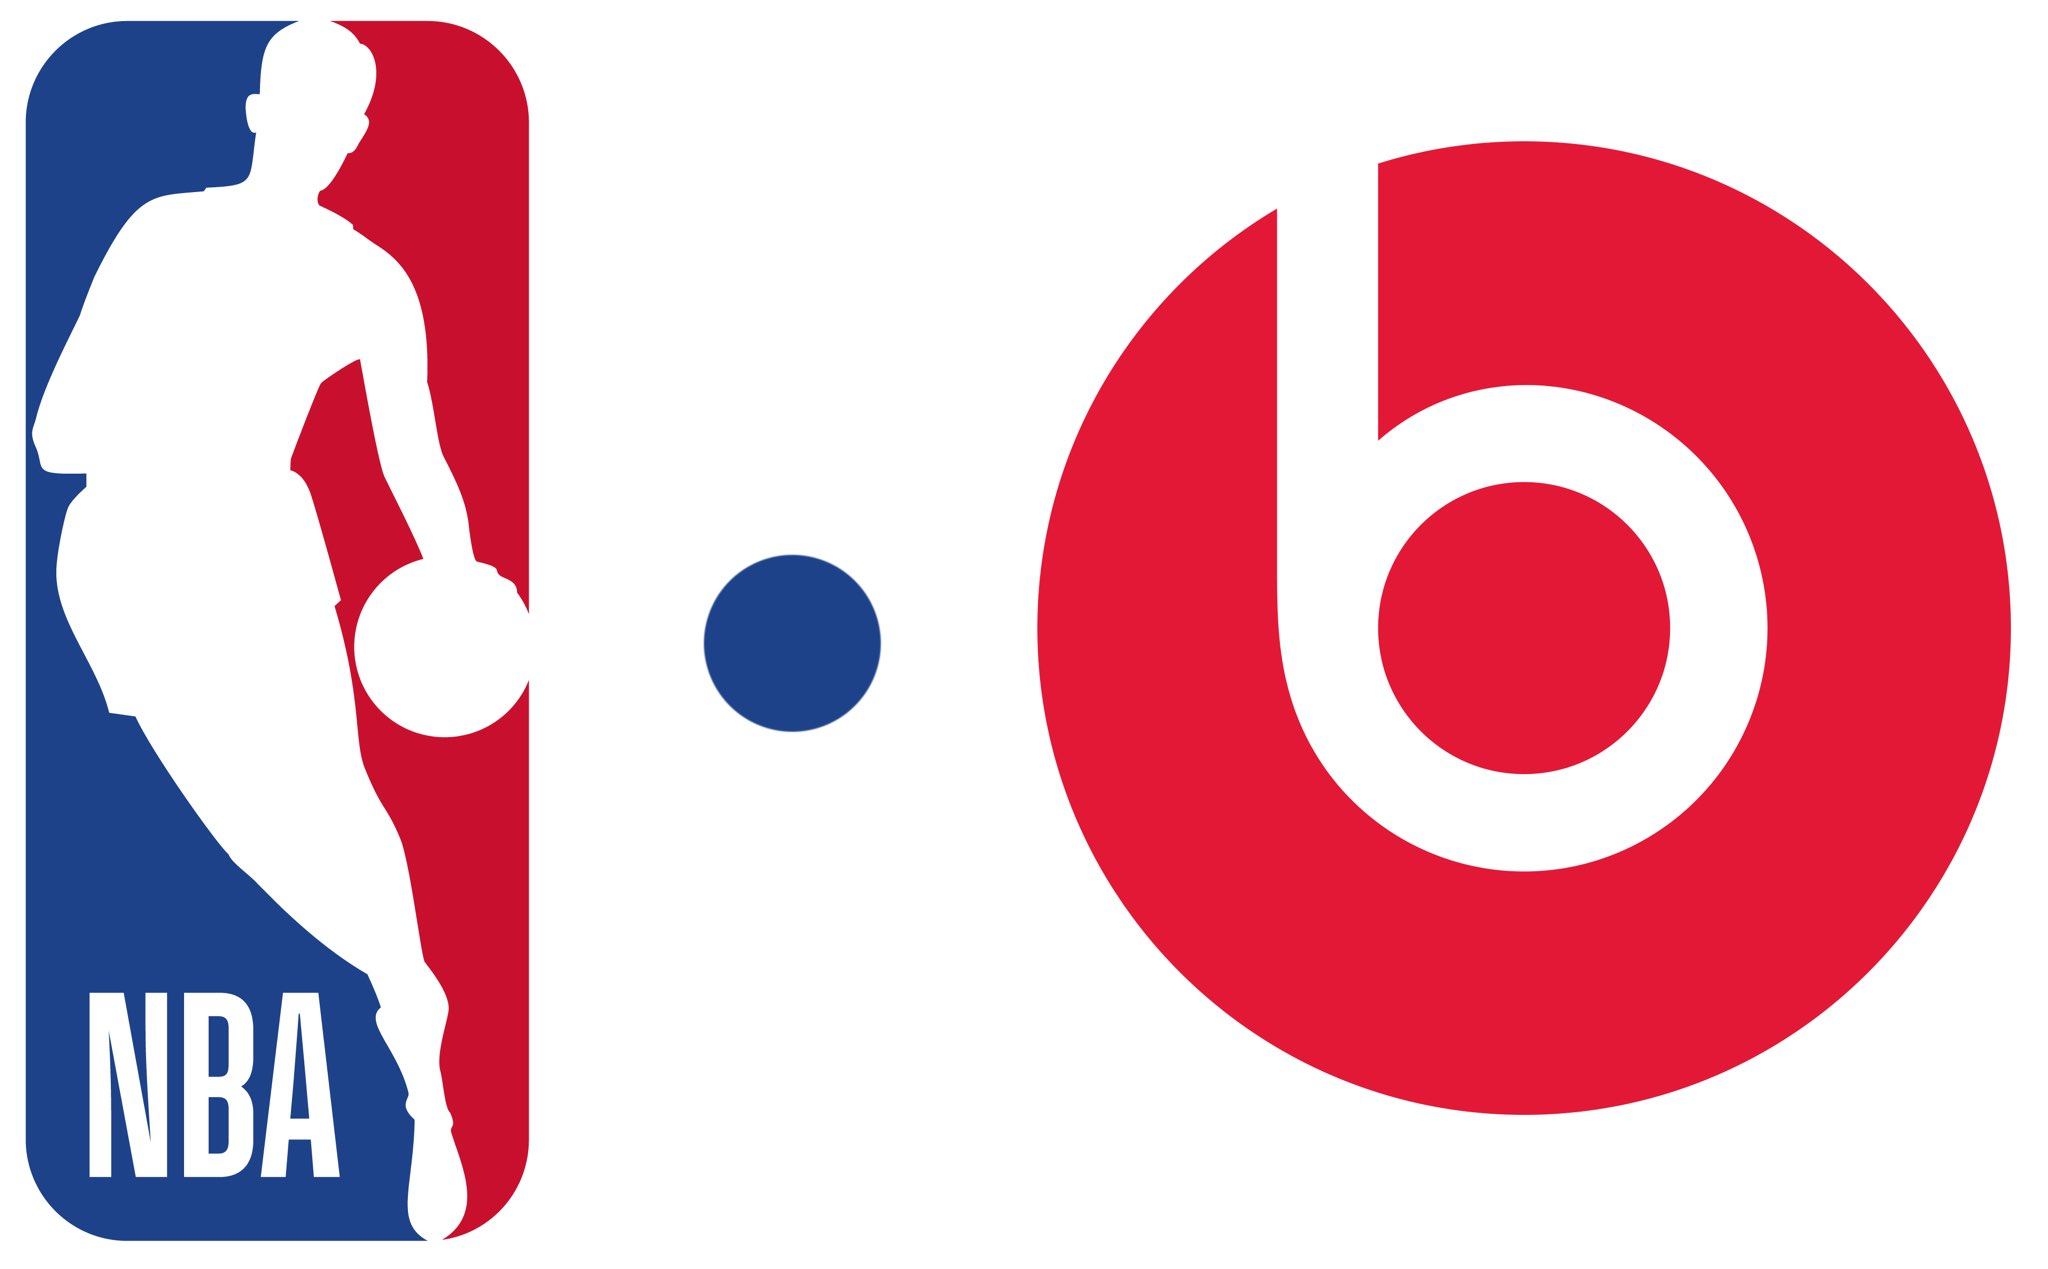 NBA and Beats logos